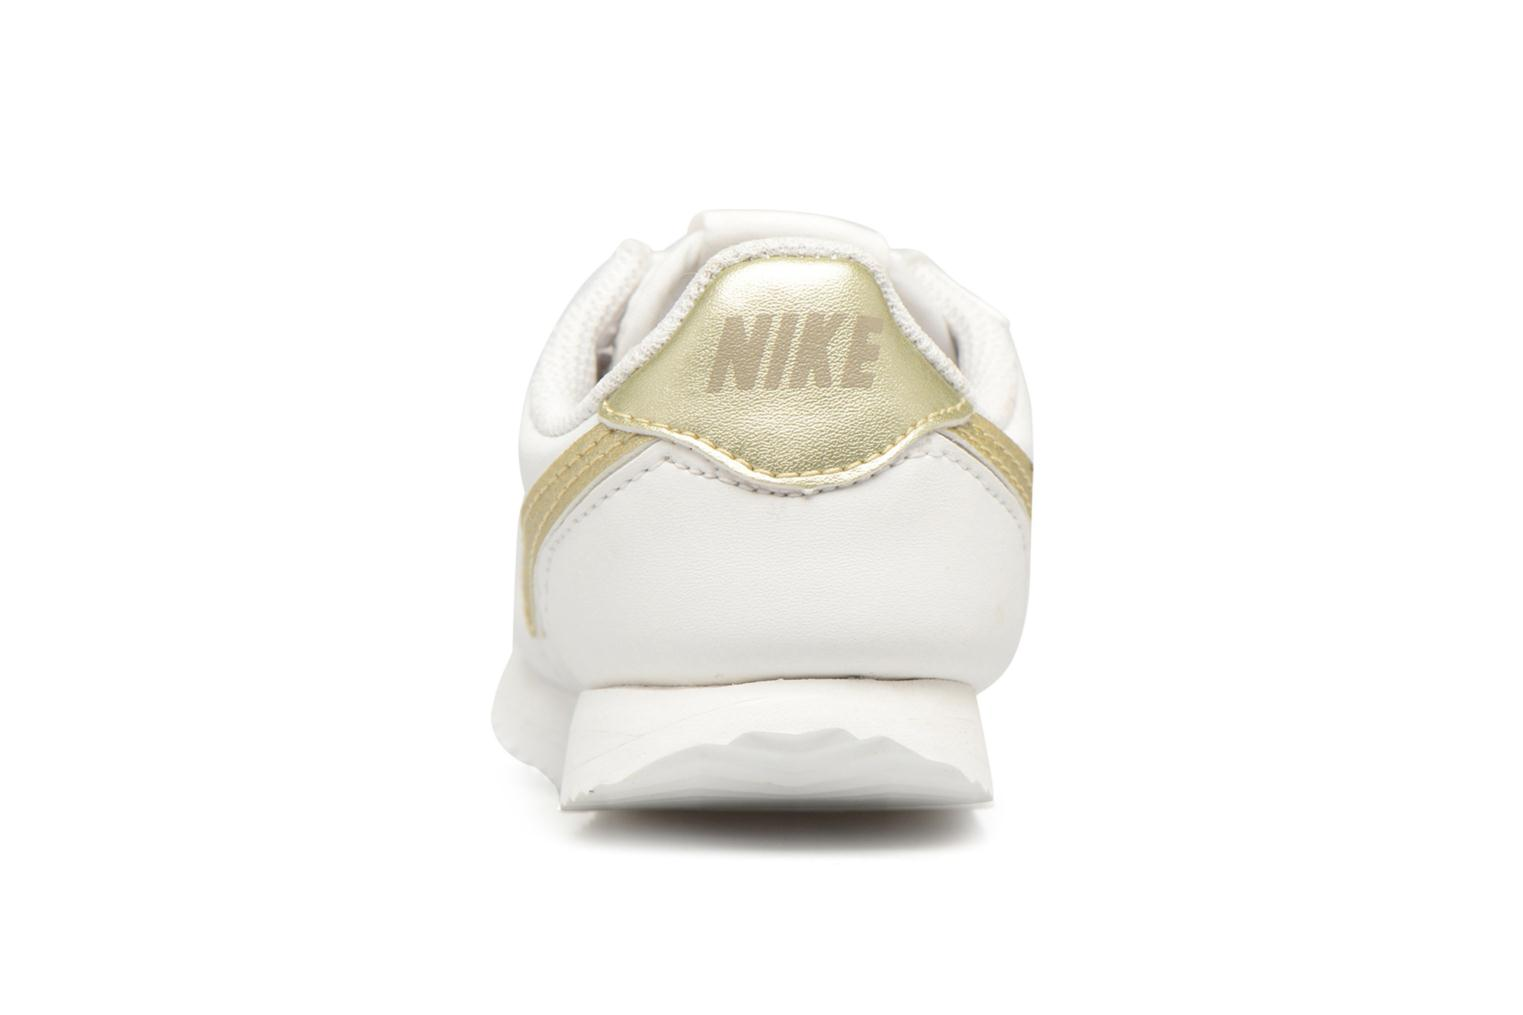 Cortez Basic Sl (Tdv) Summit White/Mtlc Gold Star